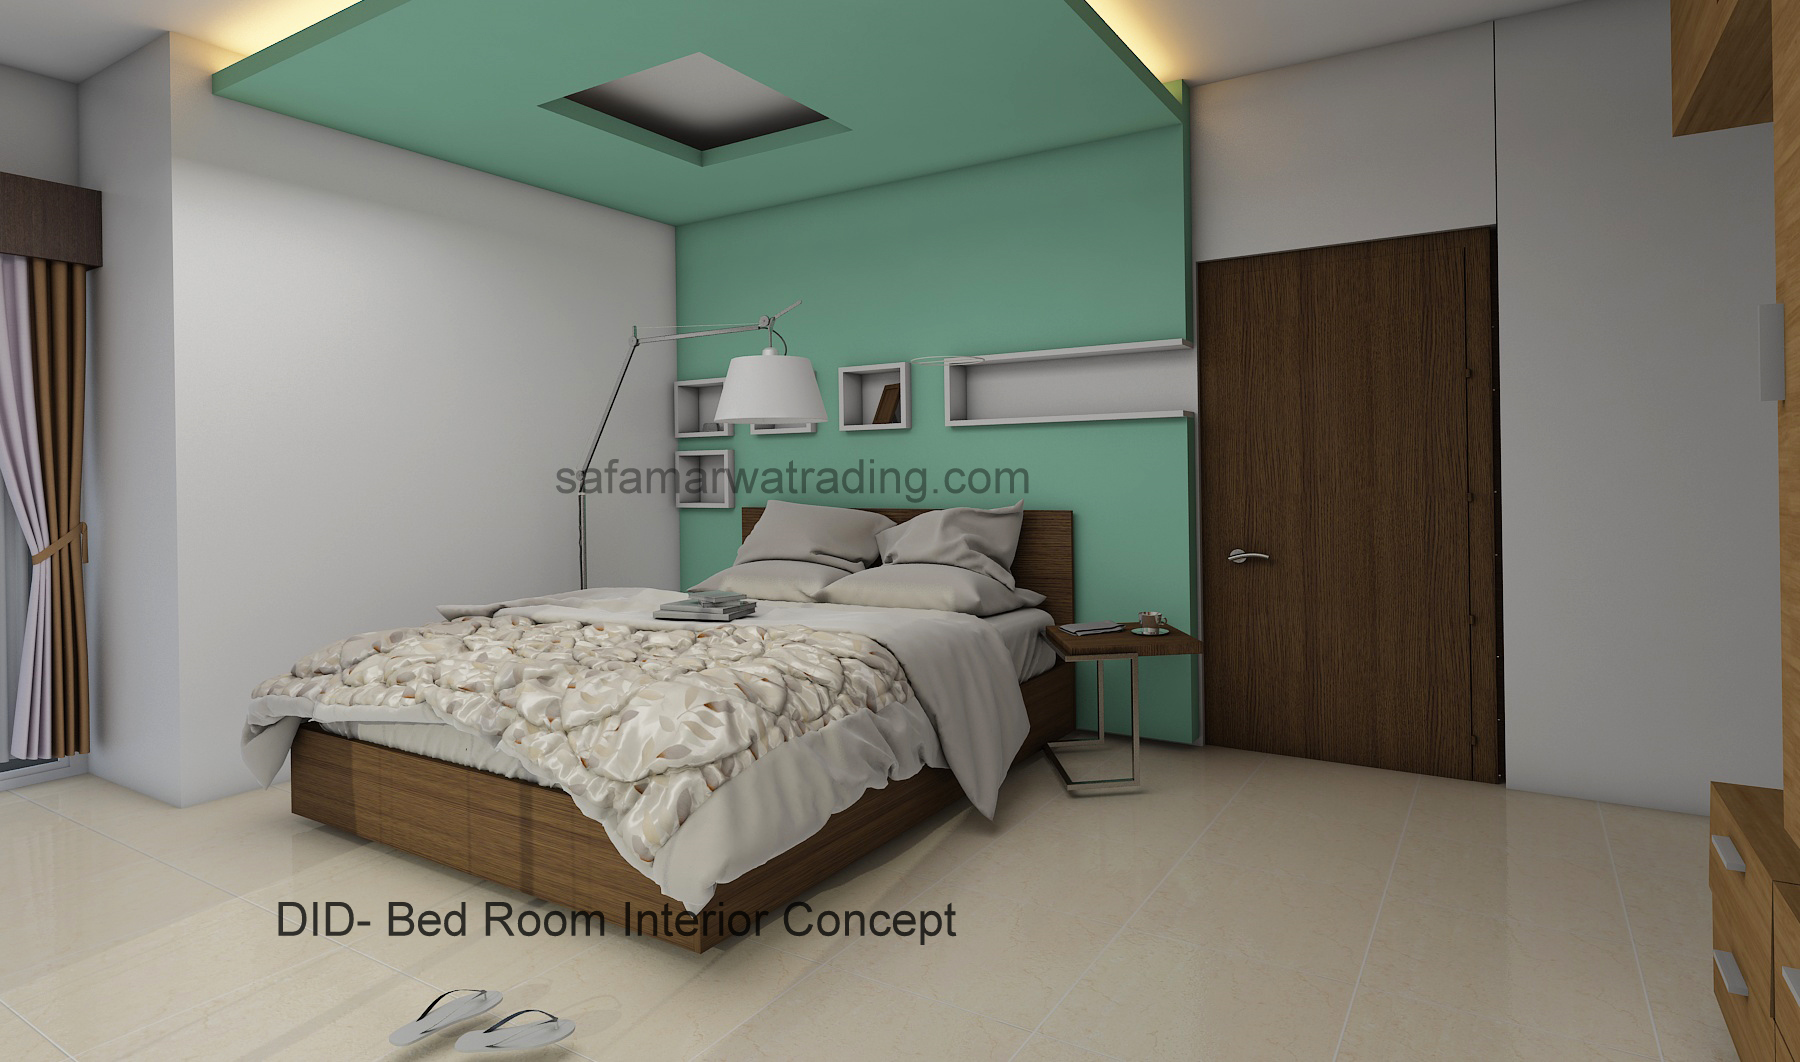 Bed Room Interior Concept